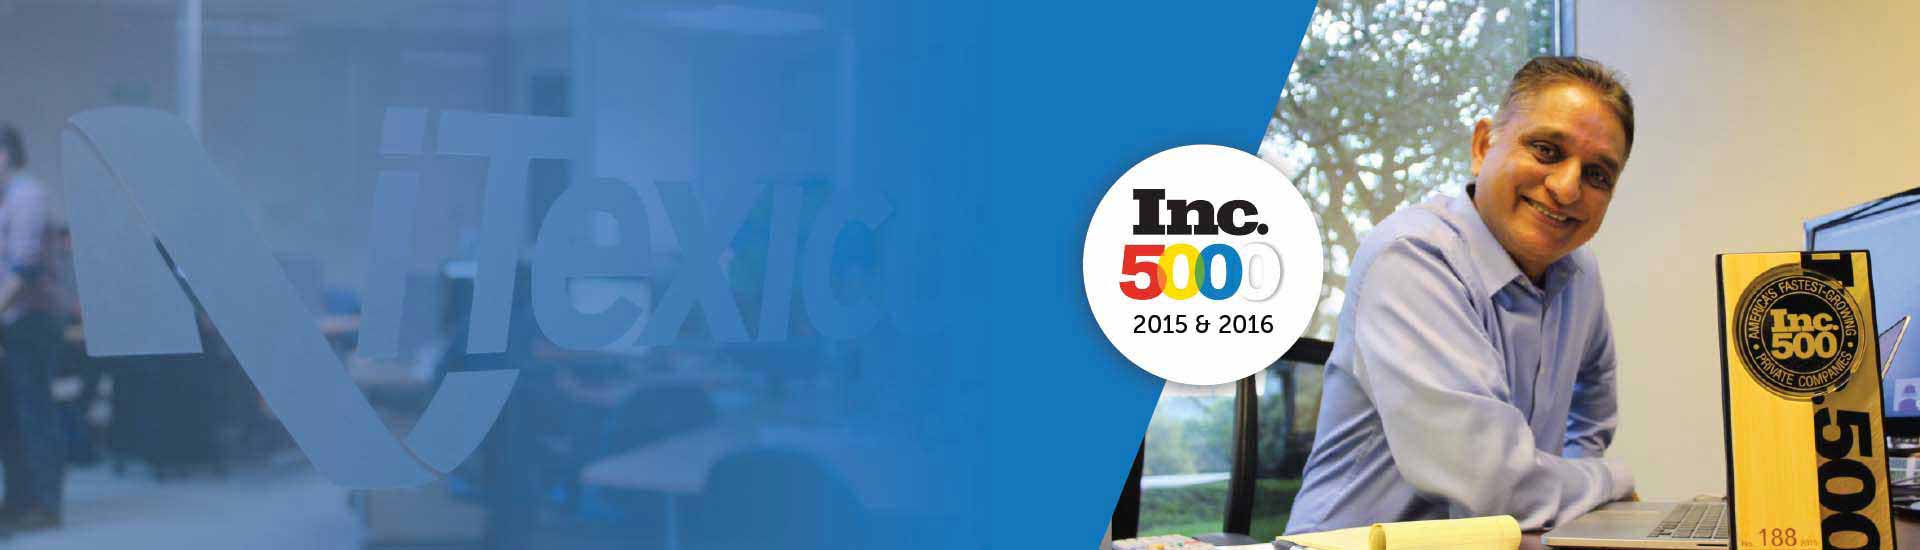 Inc 500 honoree recognition - itexico